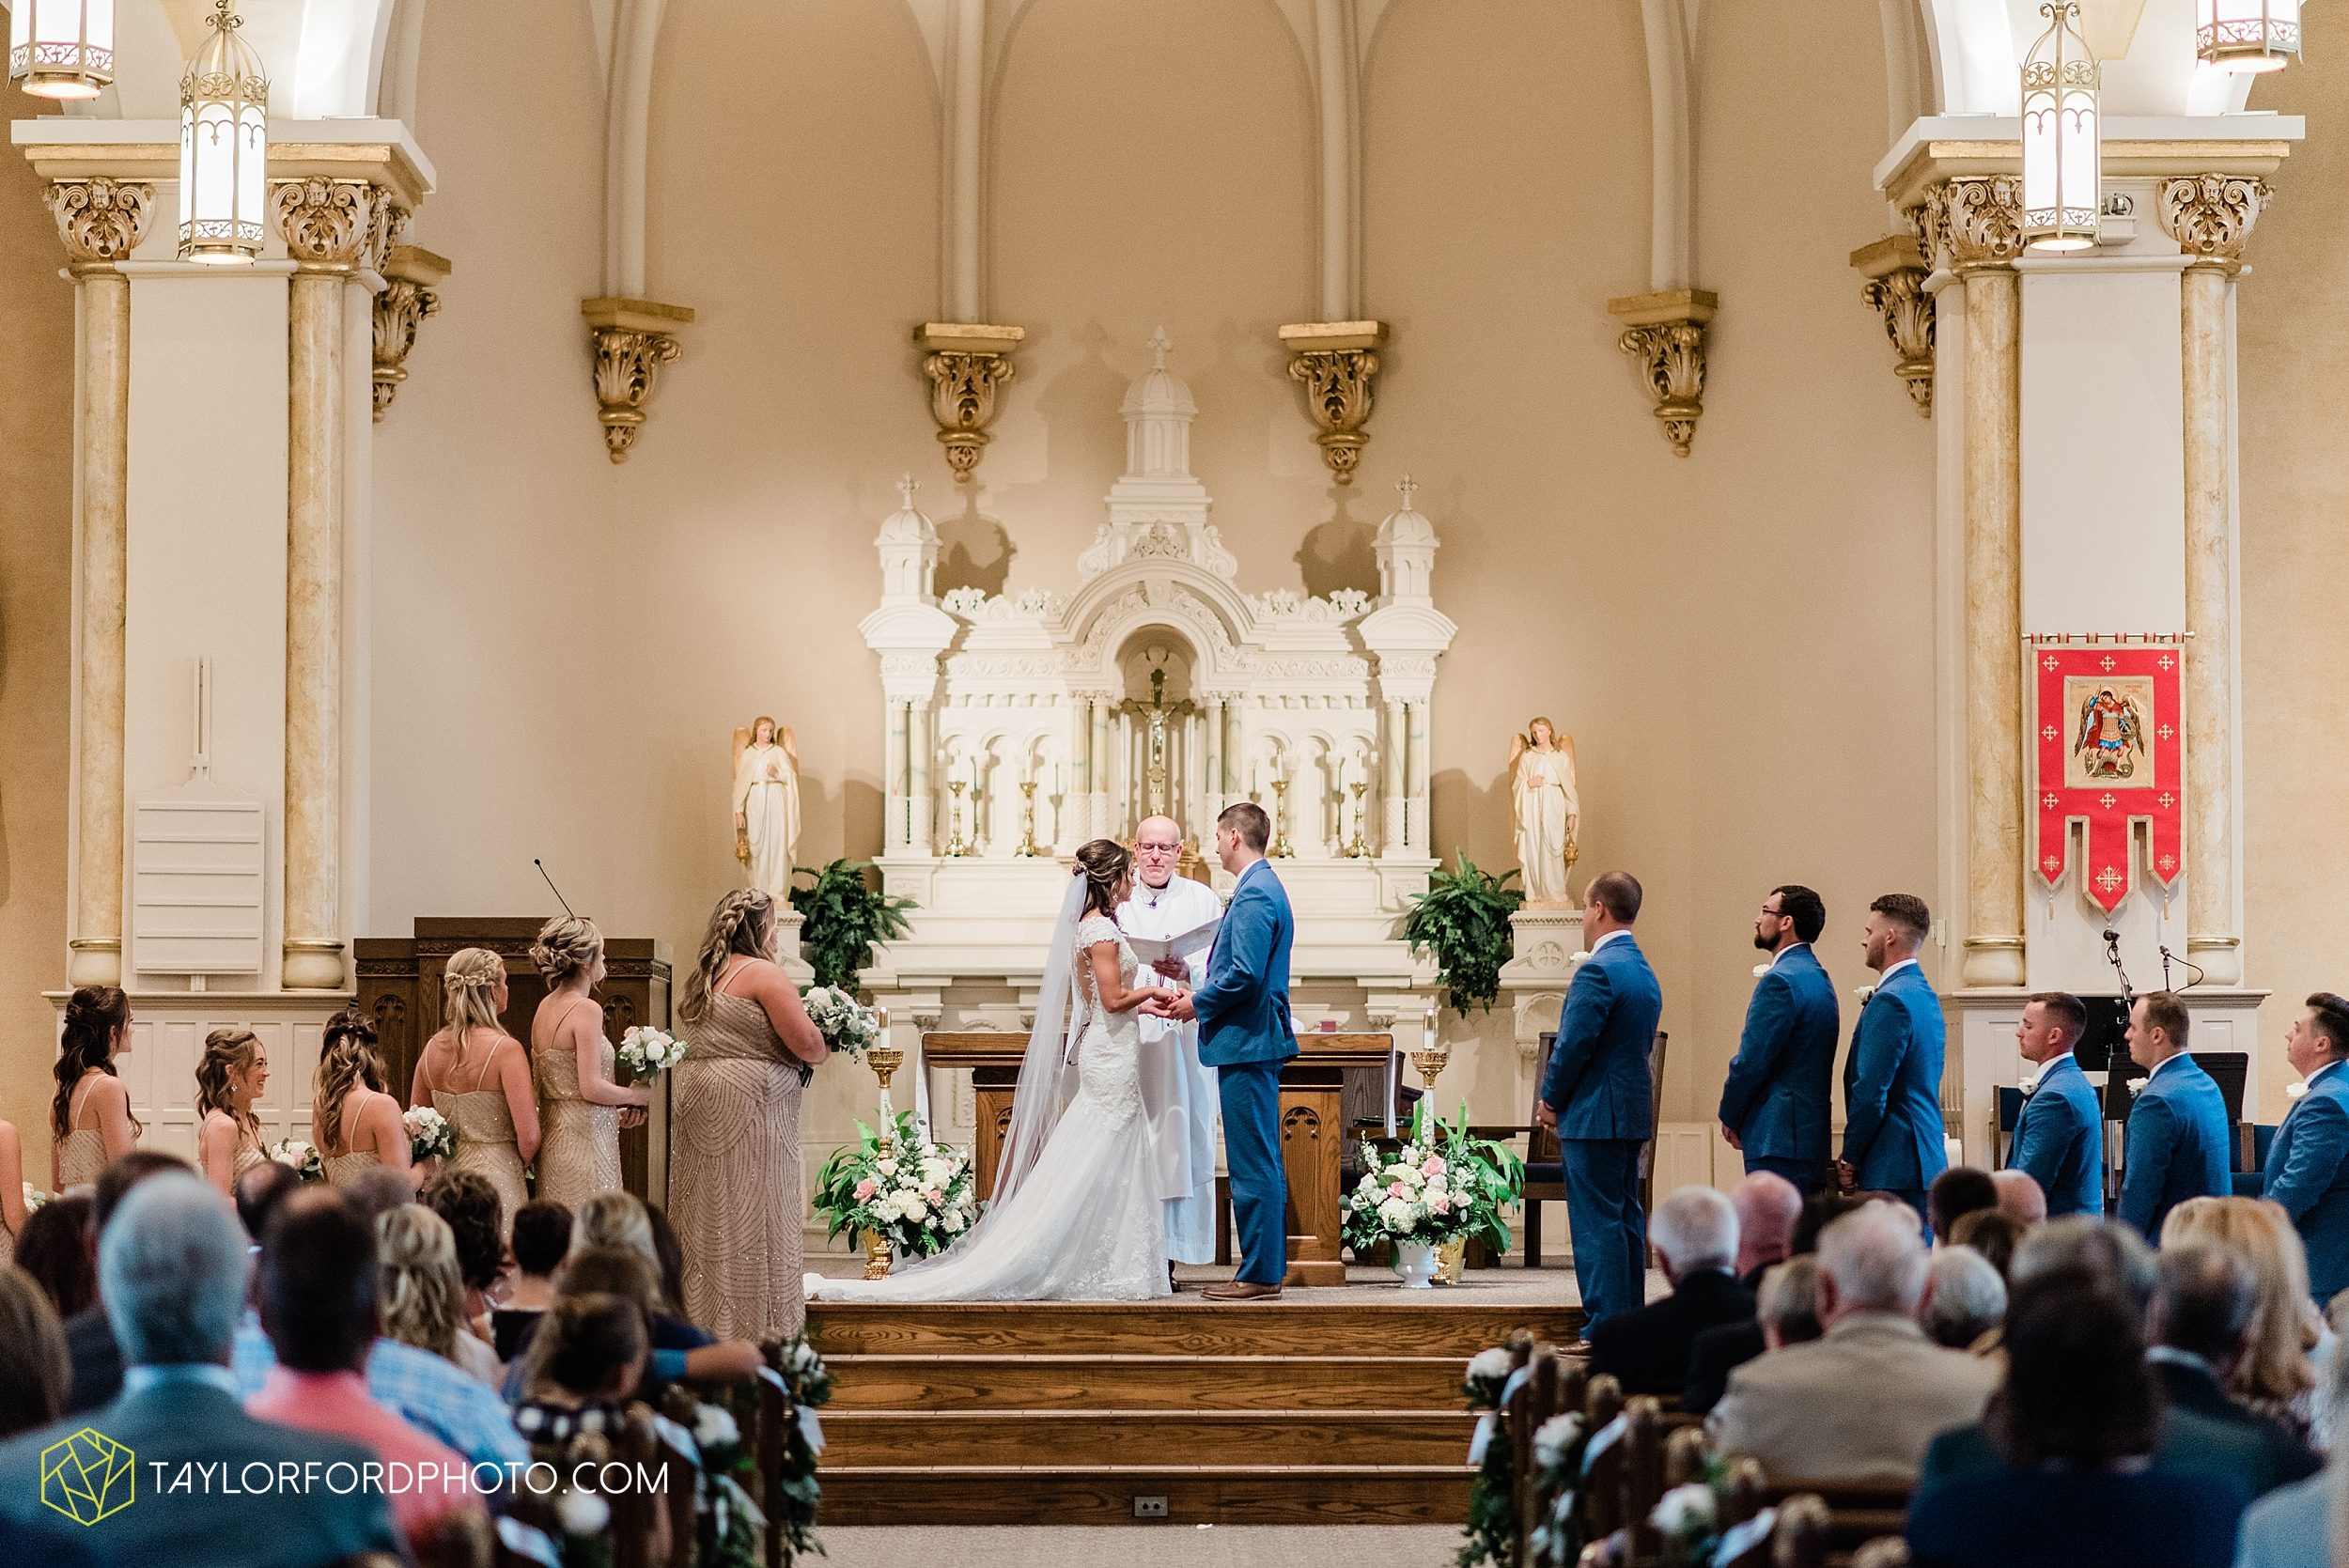 kacee-haden-sholl-second-story-saint-marys-knights-of-columbus-defiance-ohio-wedding-photographer-taylor-ford-photography_0153.jpg